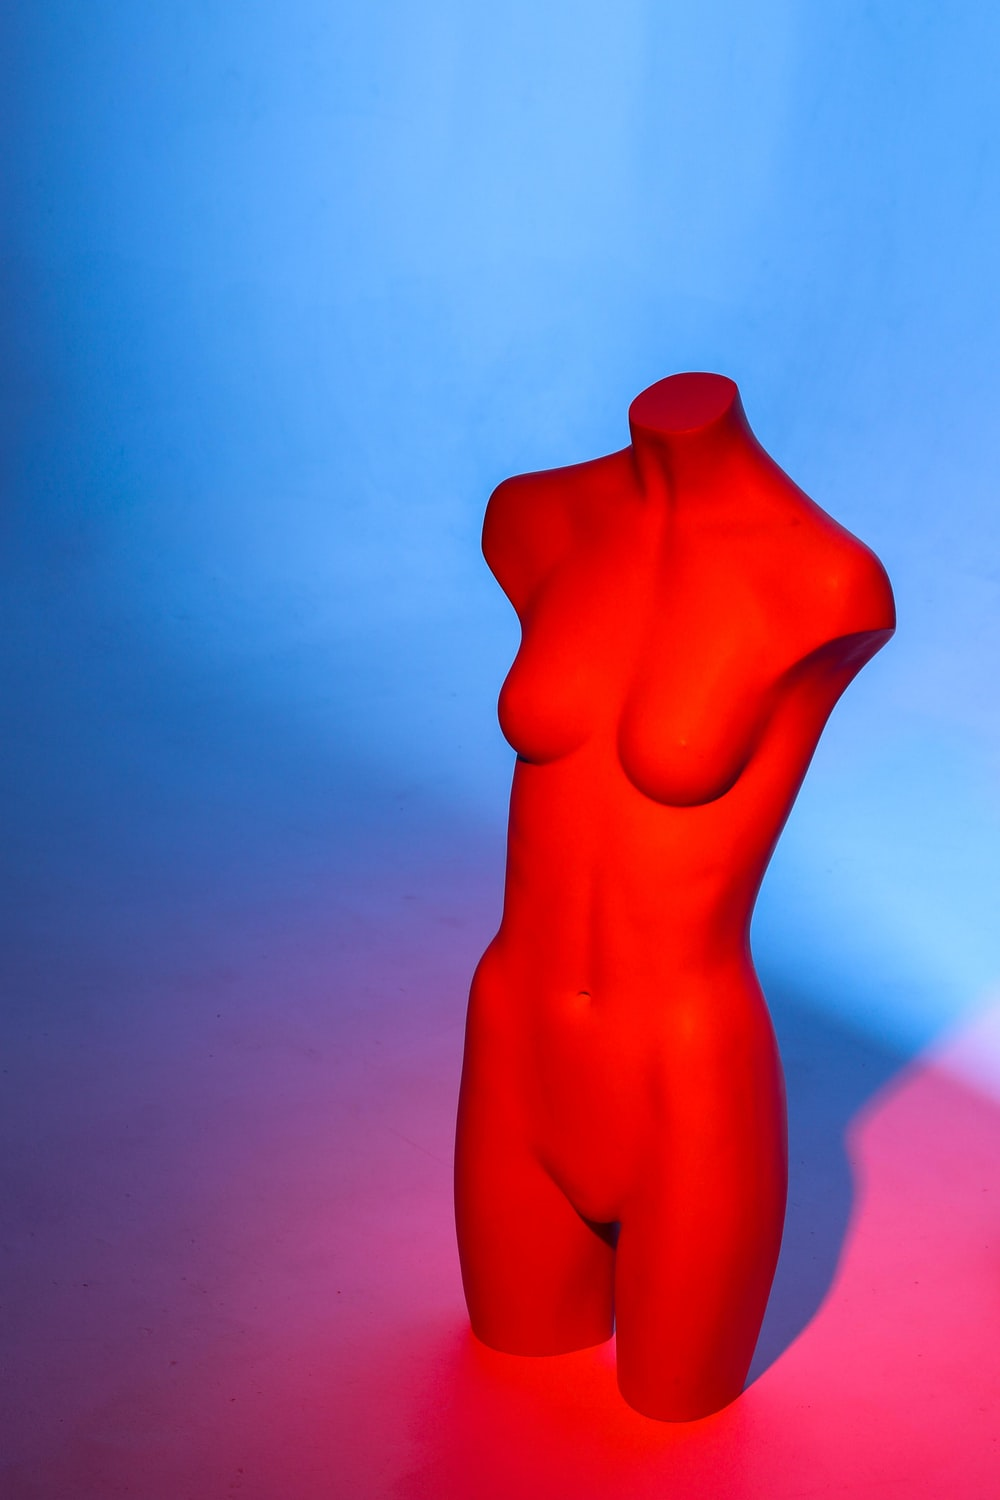 red human body figurine on white surface